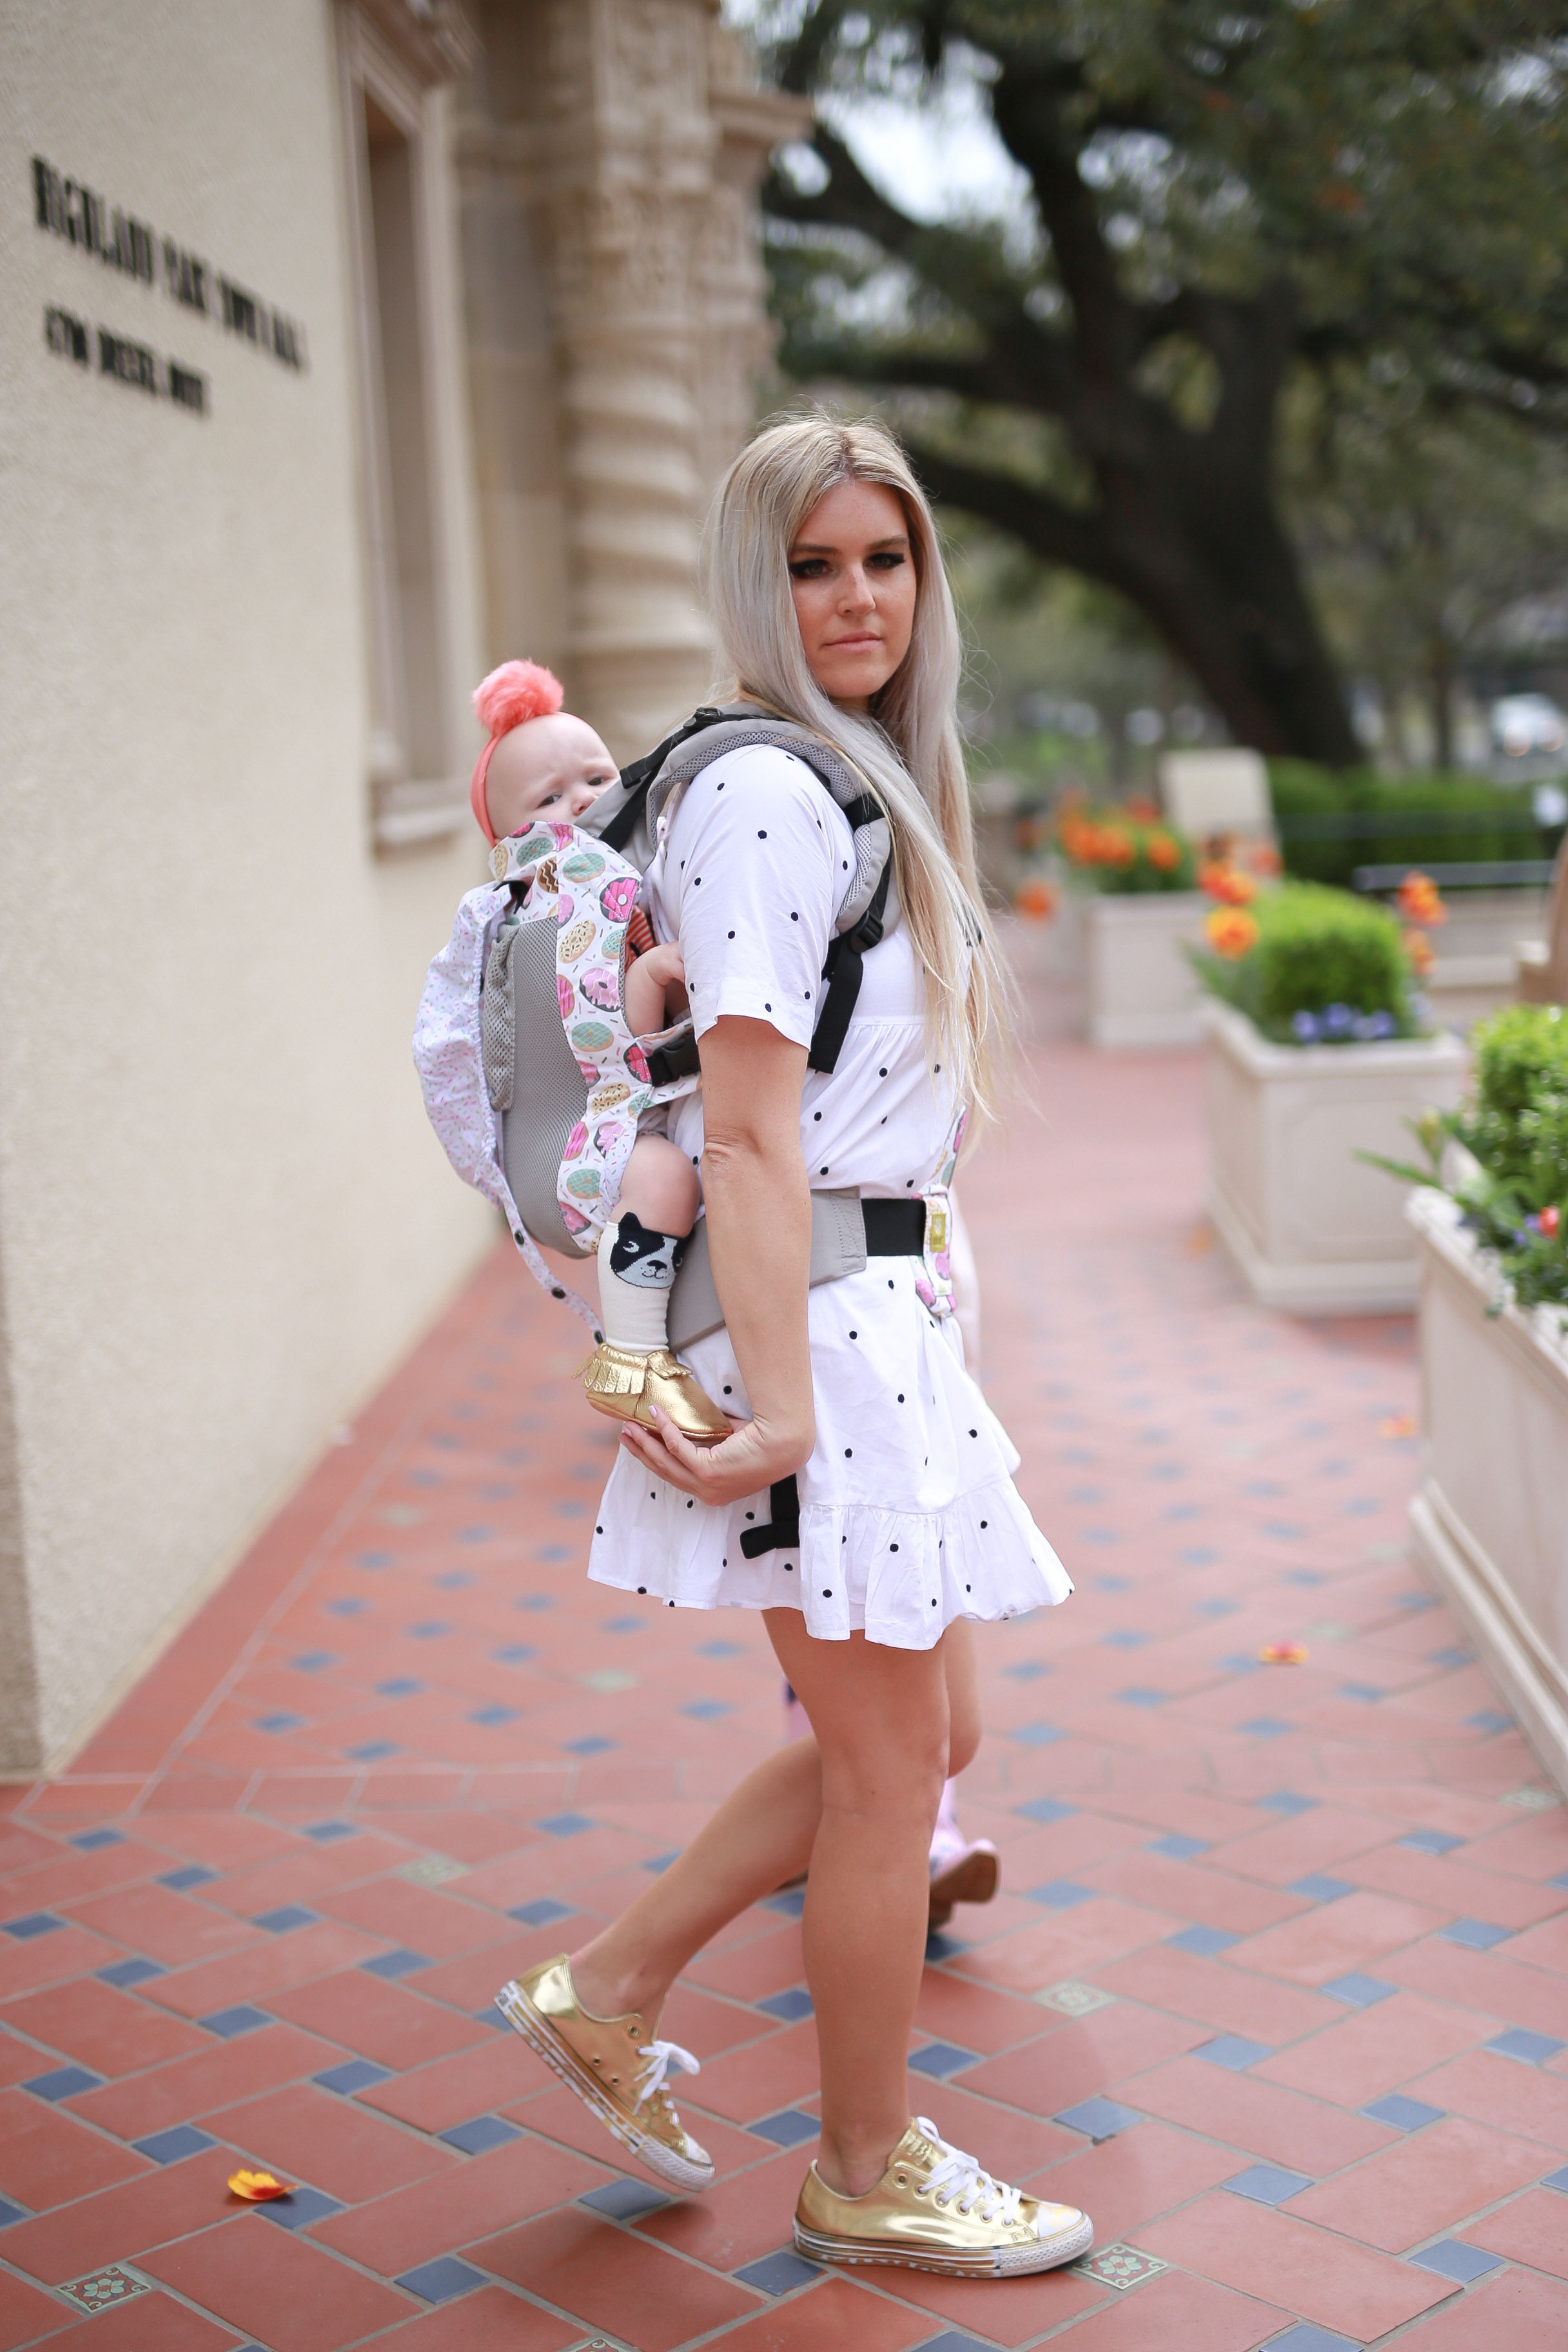 Stephany Bowman, Editor of Stephany's Choice wearing a white polka-dot ZARA smocked dress, Gold CONVERSE shoes, and baby carrier from LILLE . Angelina Bowman wearing OLLIE AND MAE